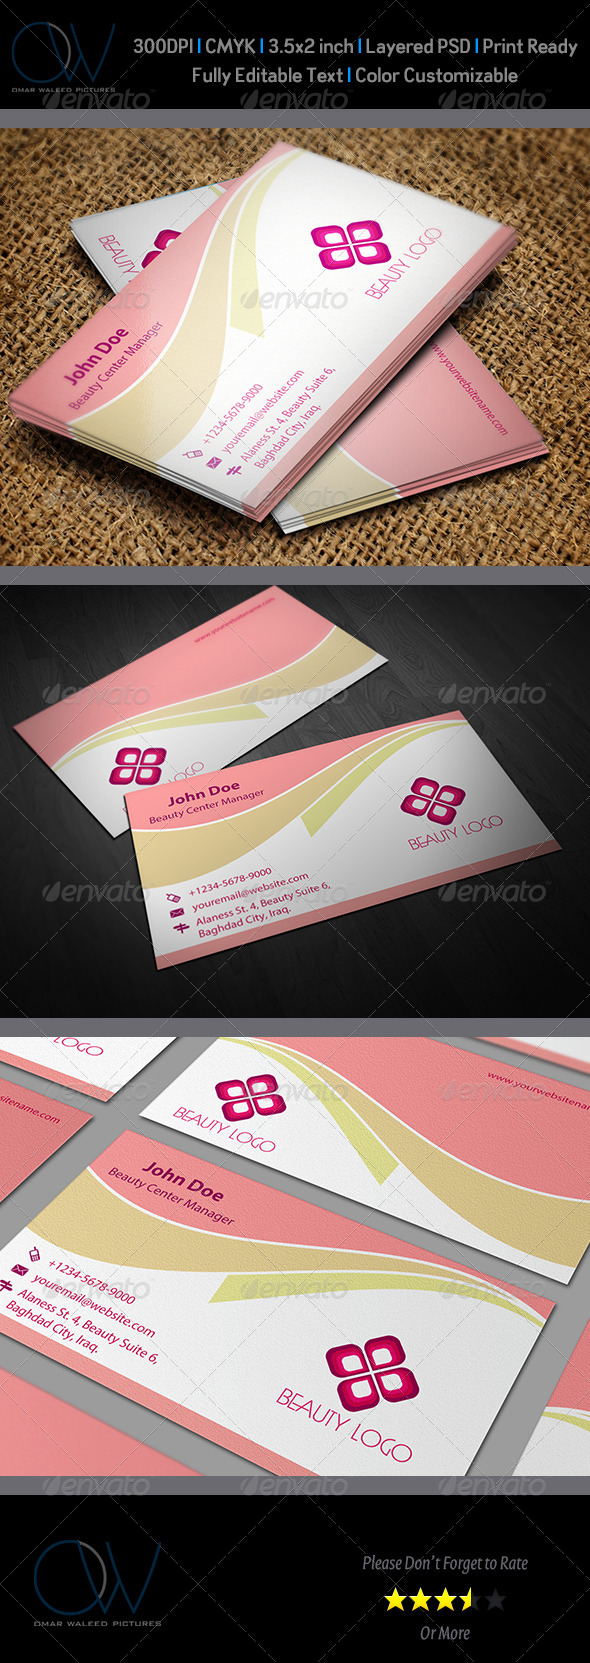 Beauty Salon Business Card Template Vol.1 - Corporate Business Cards